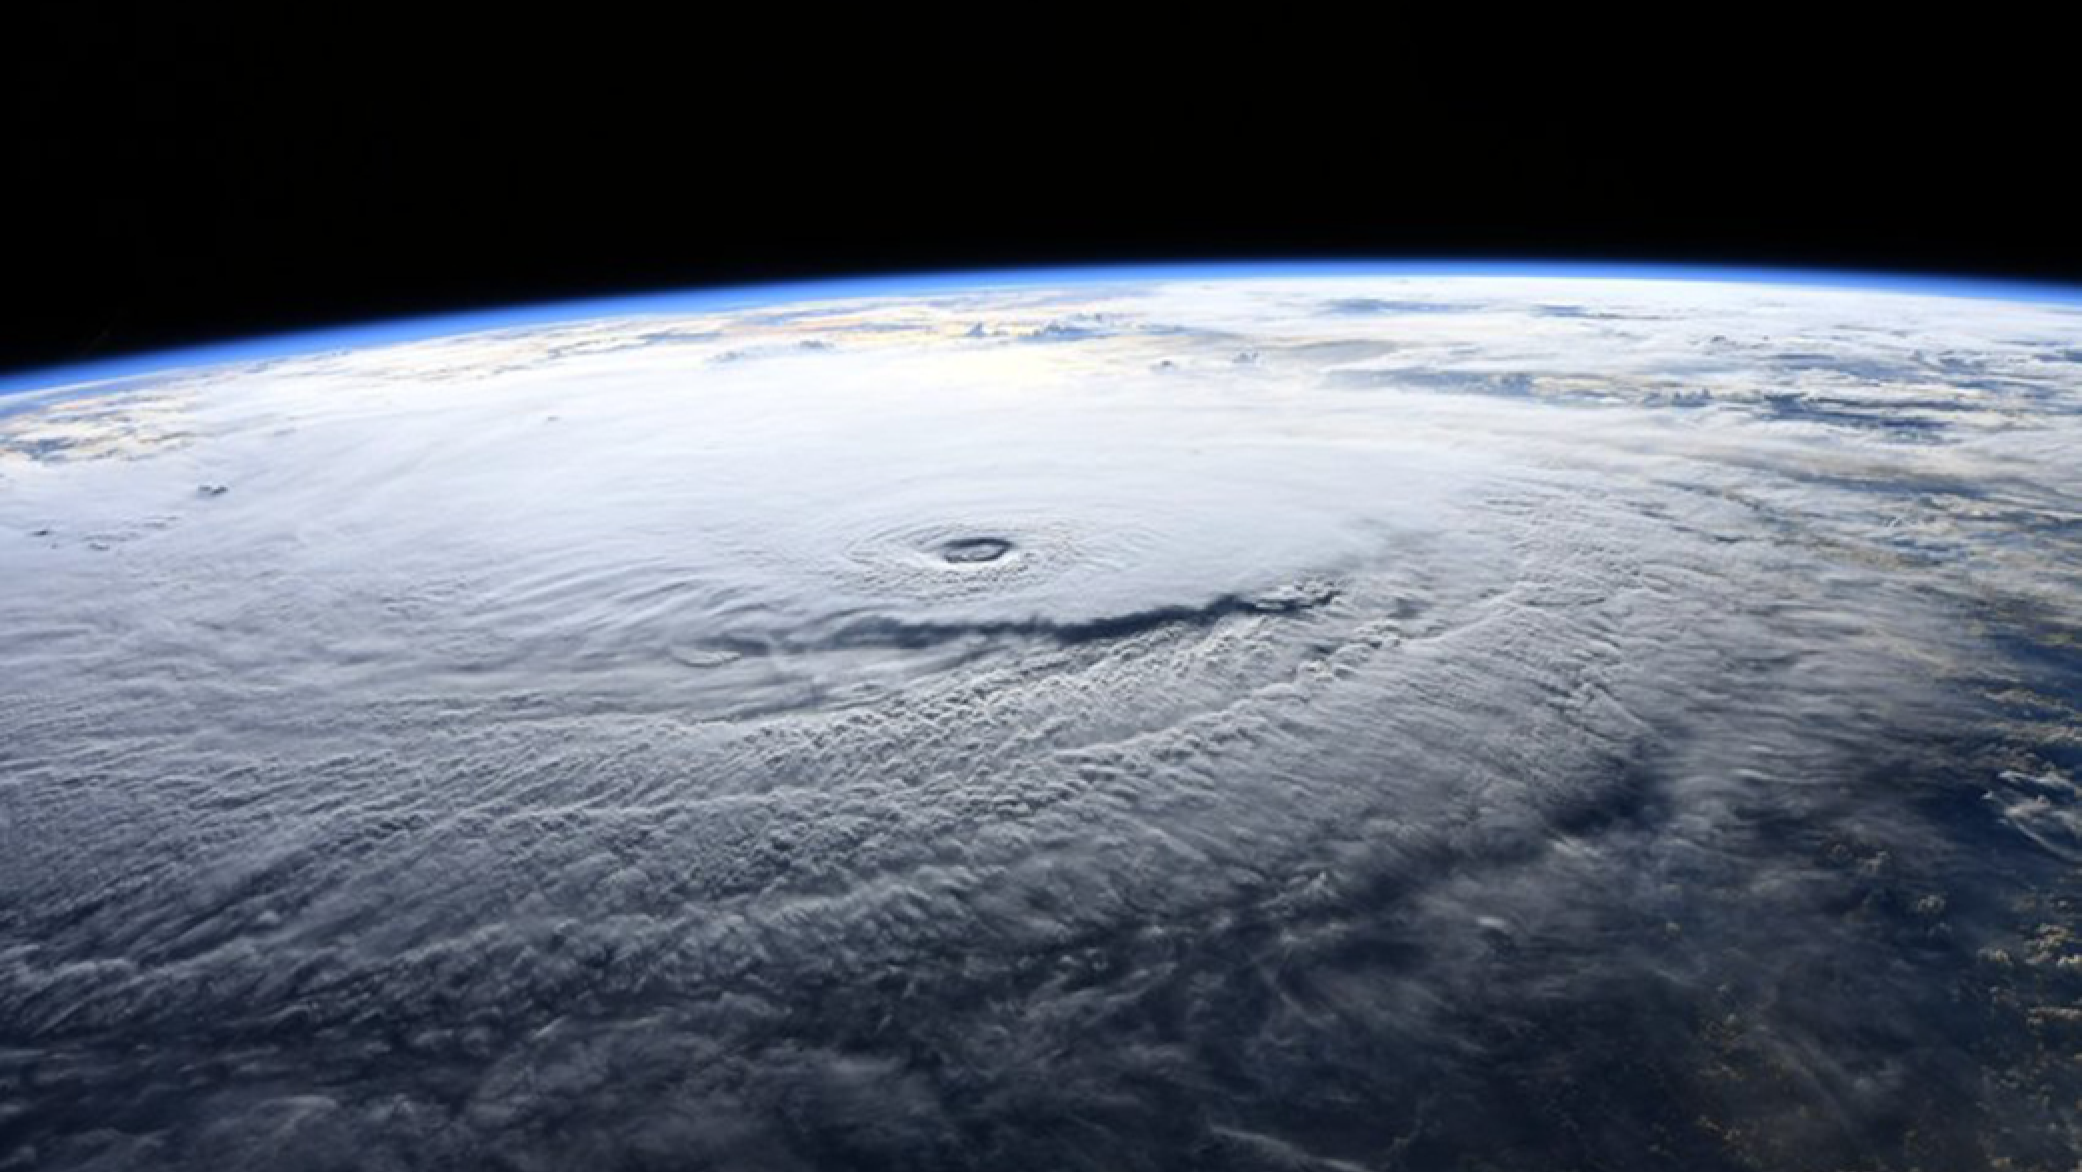 Hurricane Lane as viewed on Aug. 22, 2018 from the International Space Station.